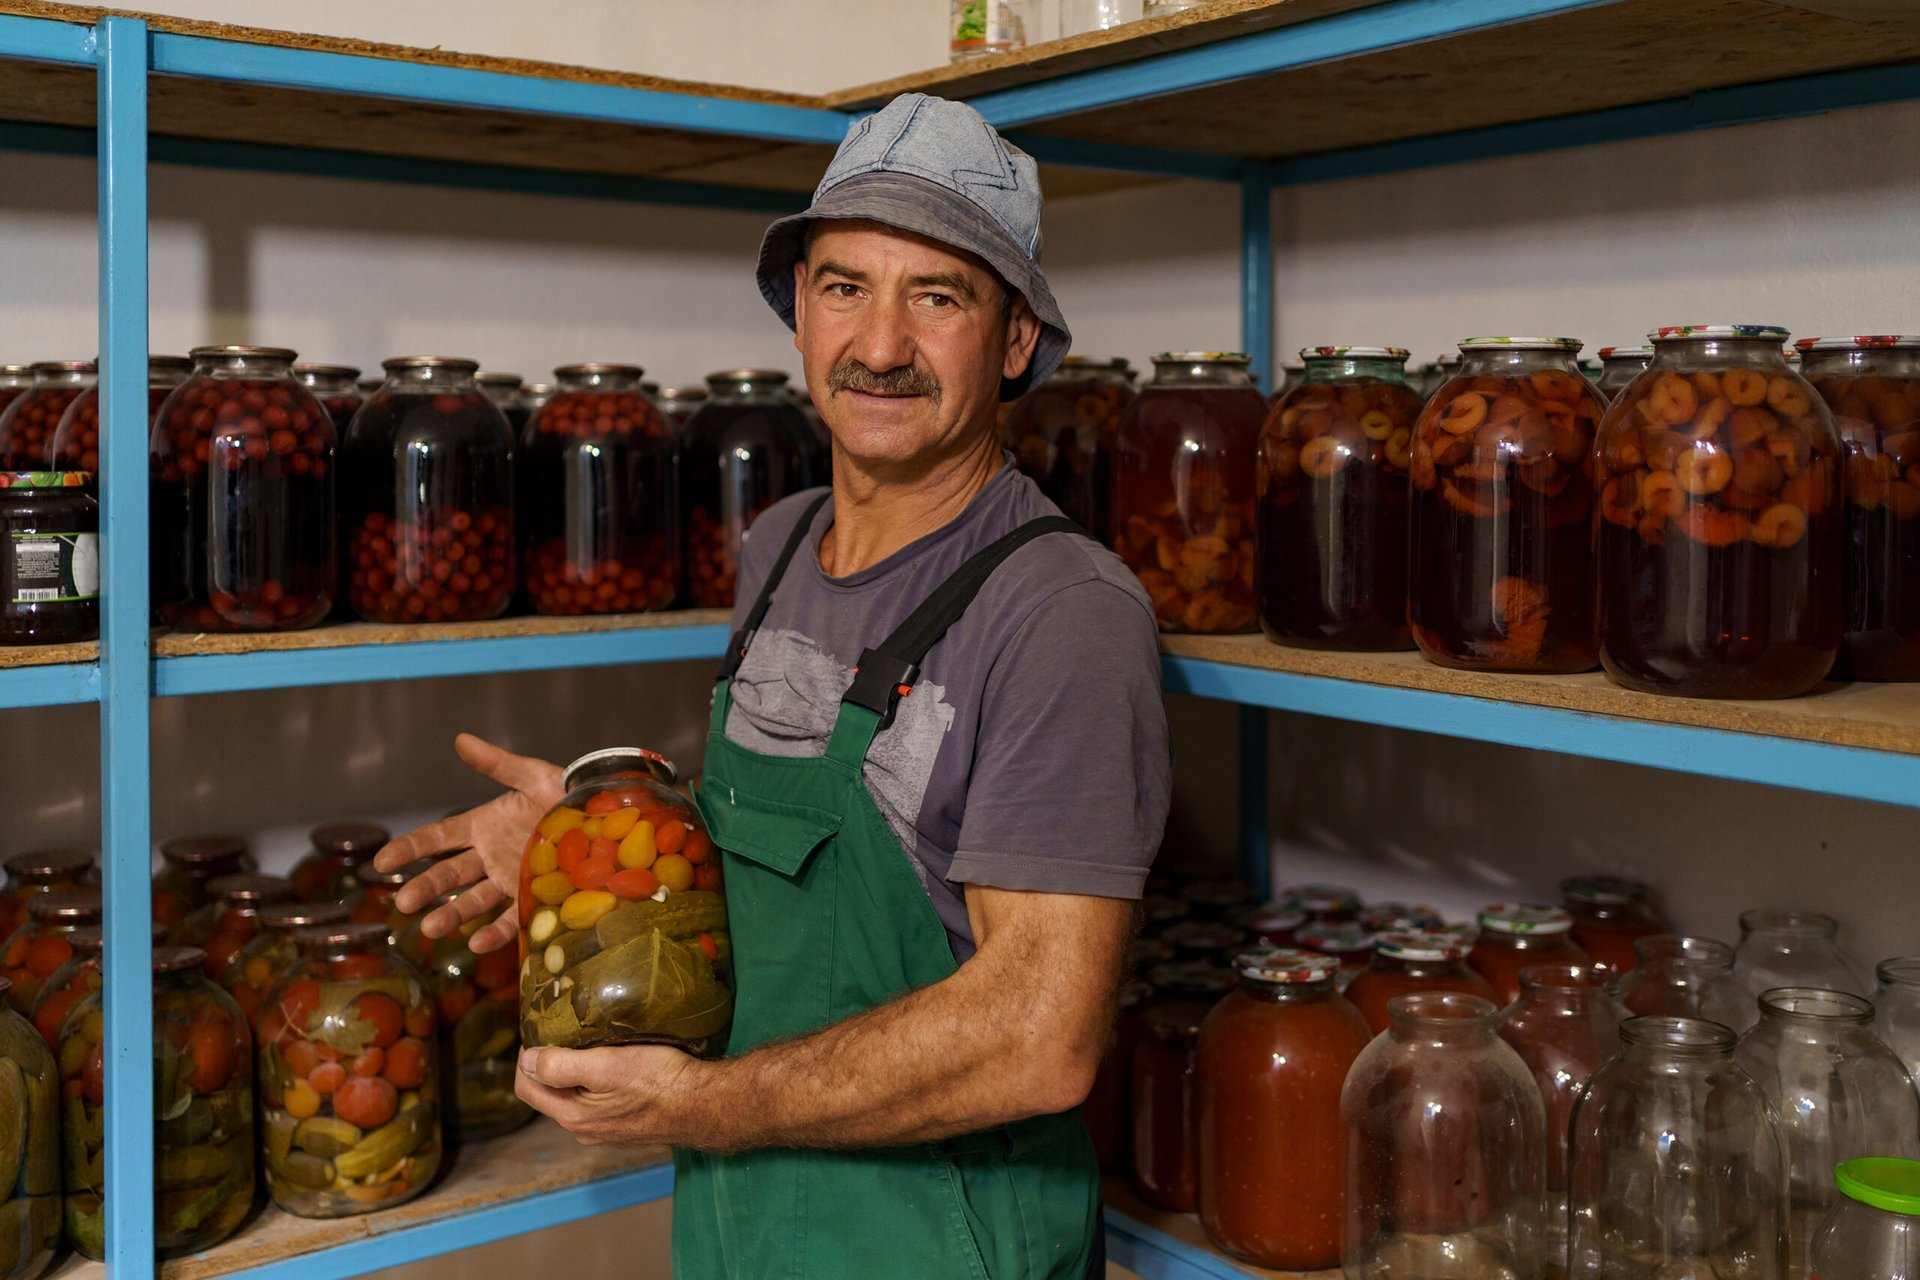 Man canning foods